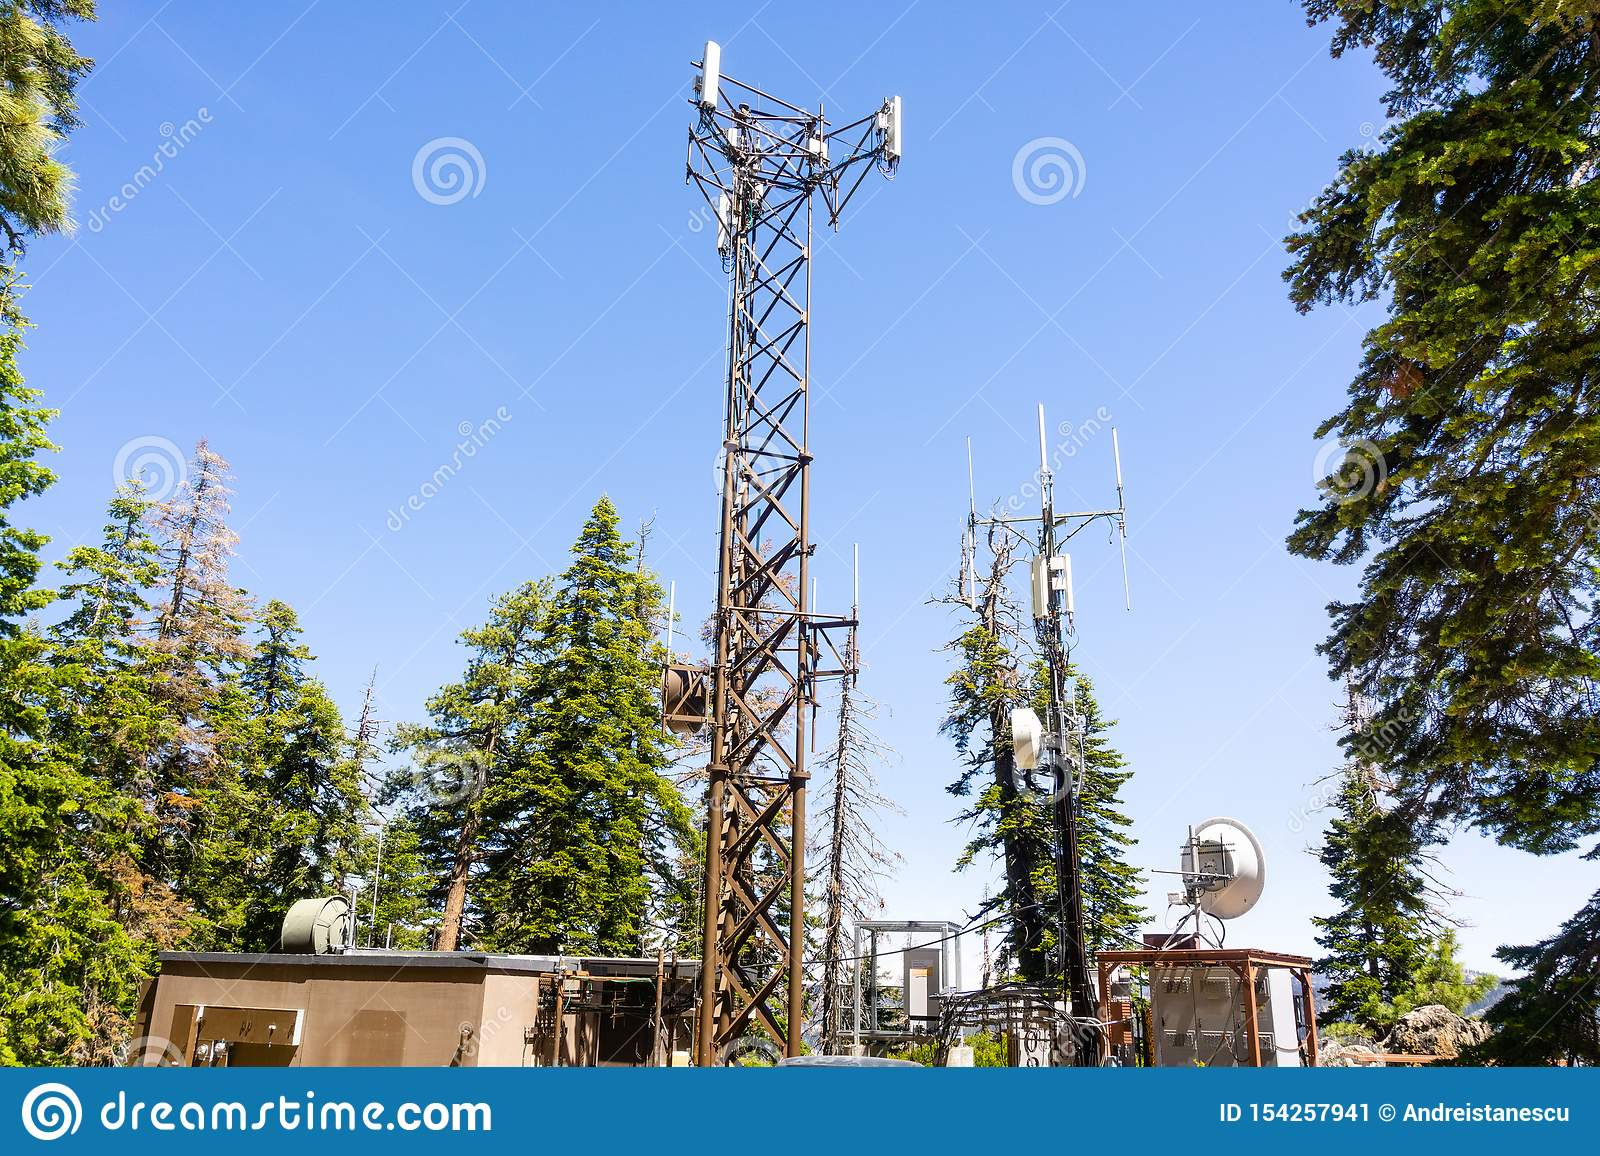 Telecommunication station and antennas located in Yosemite National Park, Sierra Nevada mountains, California